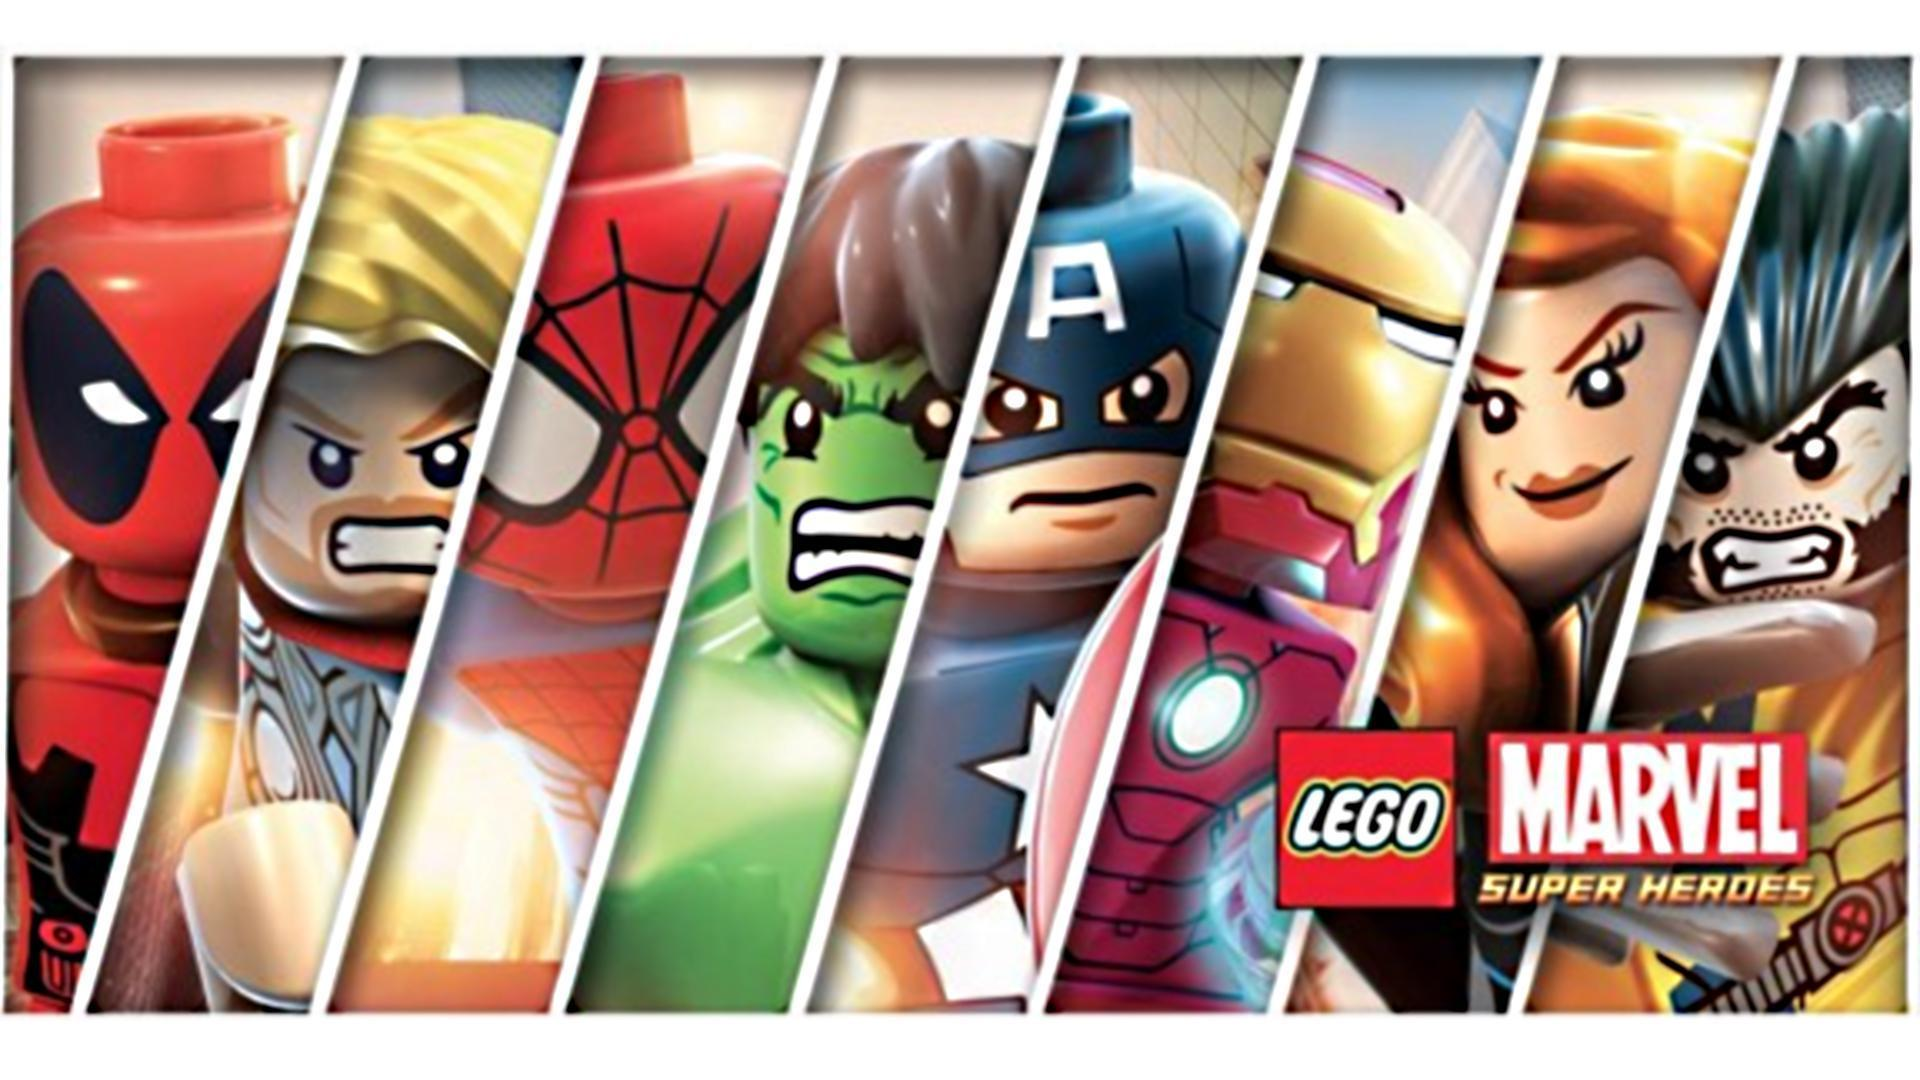 Lego Bedroom Wallpaper Marvel Wallpaper For Bedroom Katiefellcom